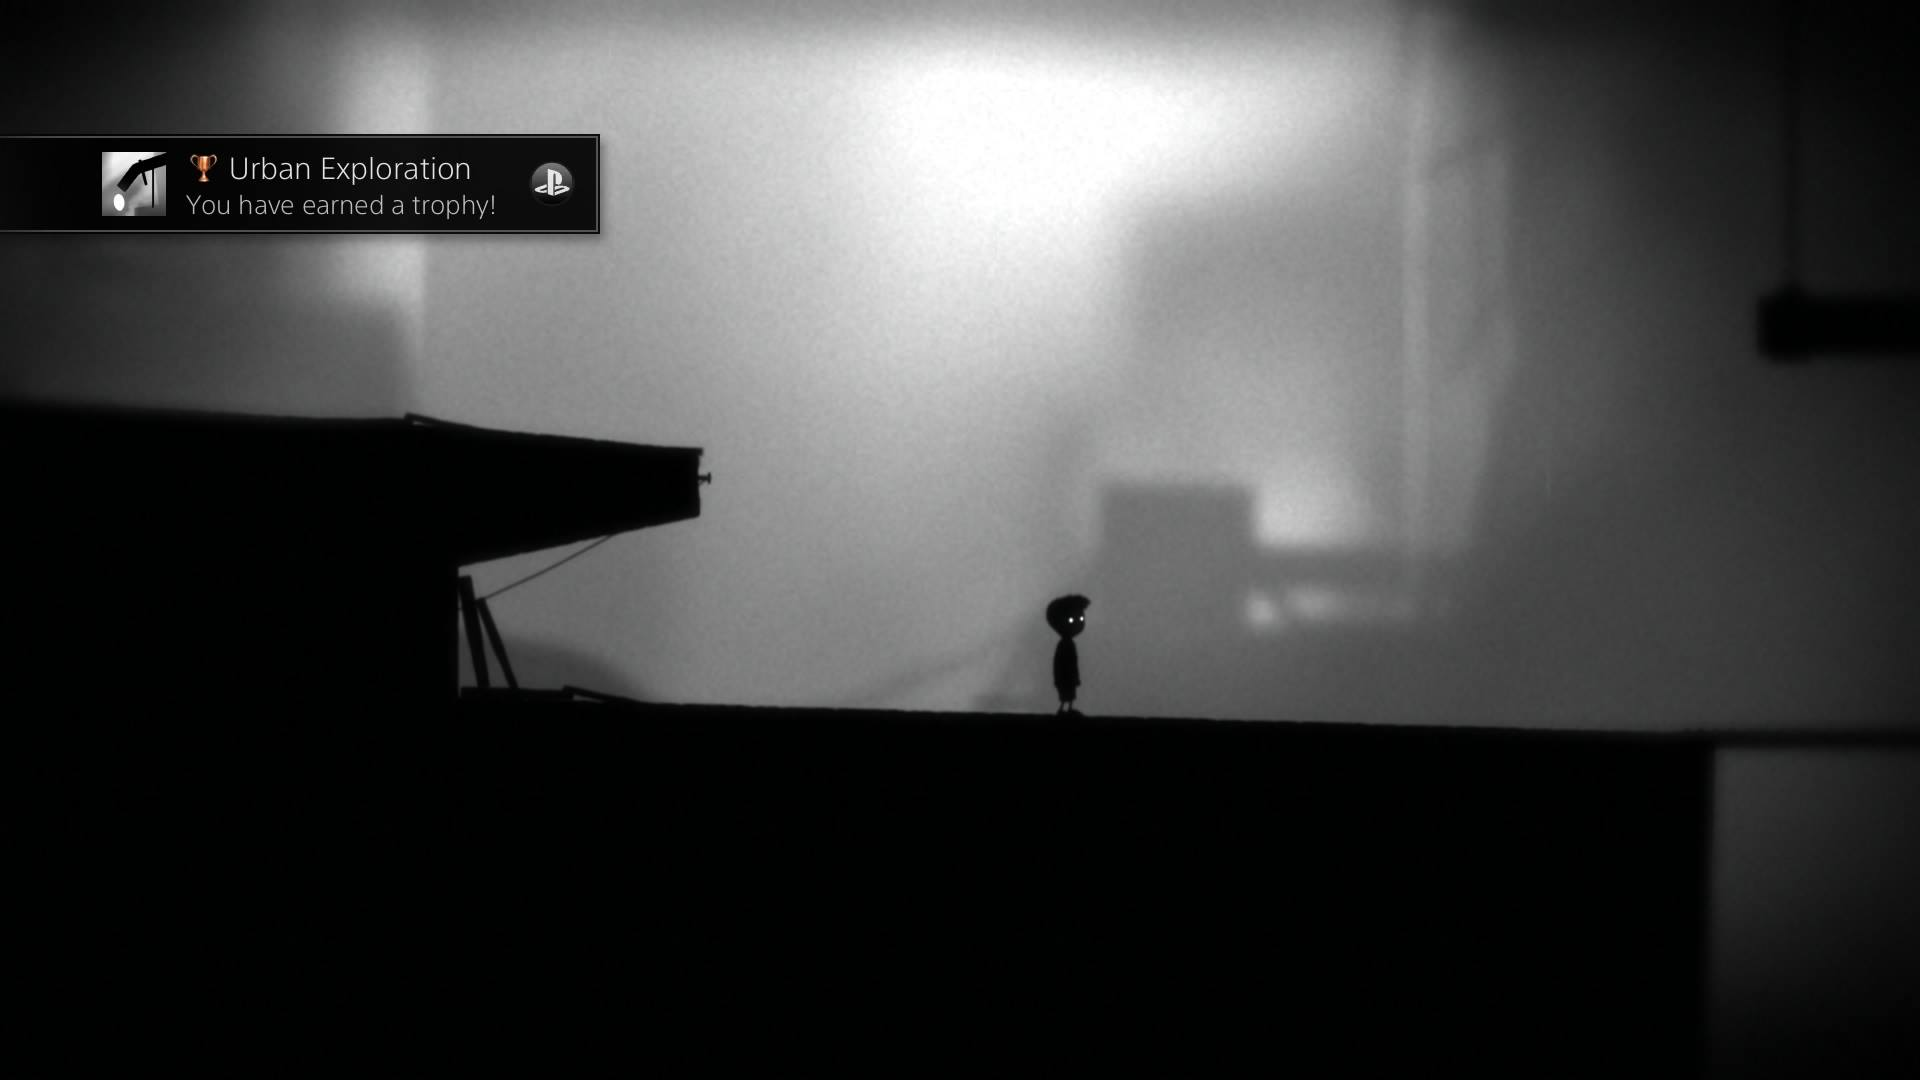 A screenshot of 'Limbo' for the Playstation 4